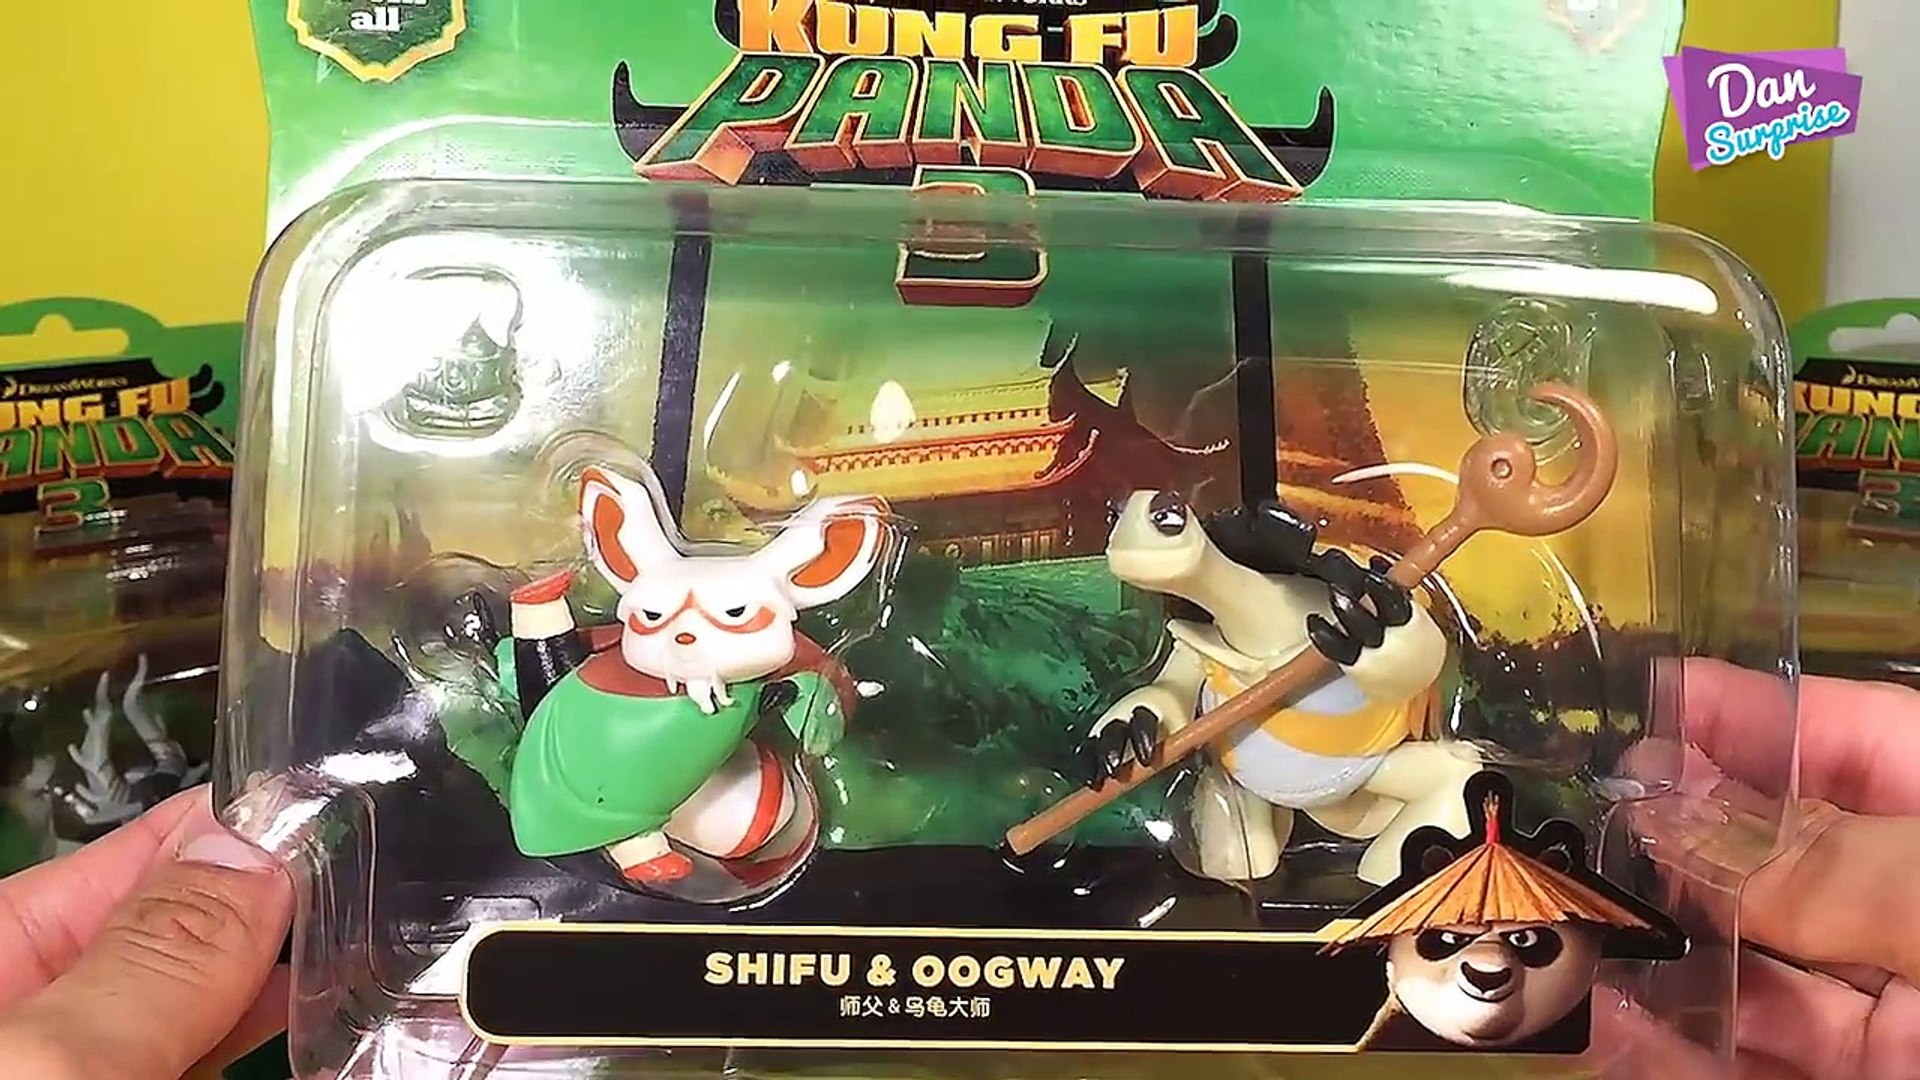 Kungfu Panda 3 Figurine Toy Complete Set Unboxing Characters Intro Video Dailymotion